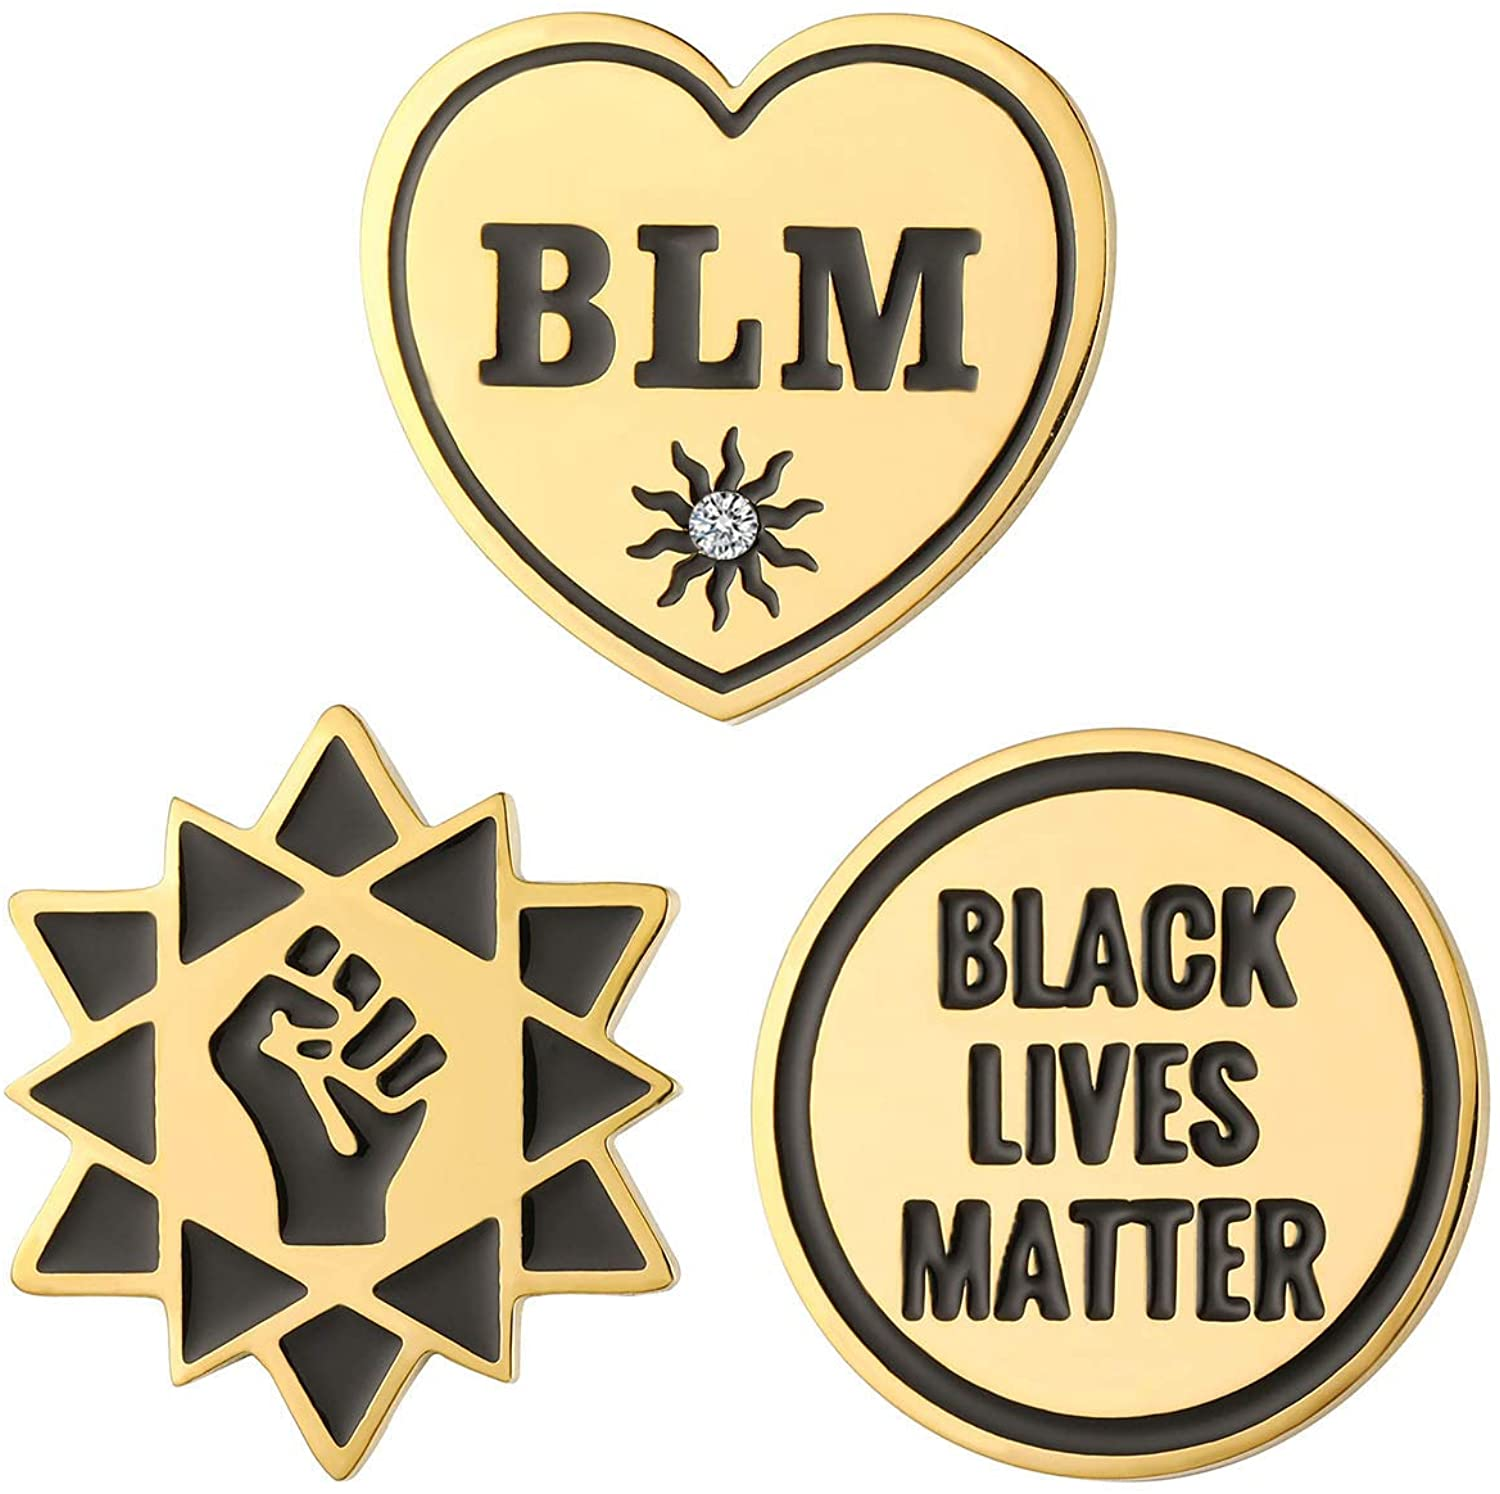 luomart Black Lives Matter Pin -BLM Pin-Black Raised Fist Pin-Enamel Pins Brooches Buttons for Hat Shirt Backpack